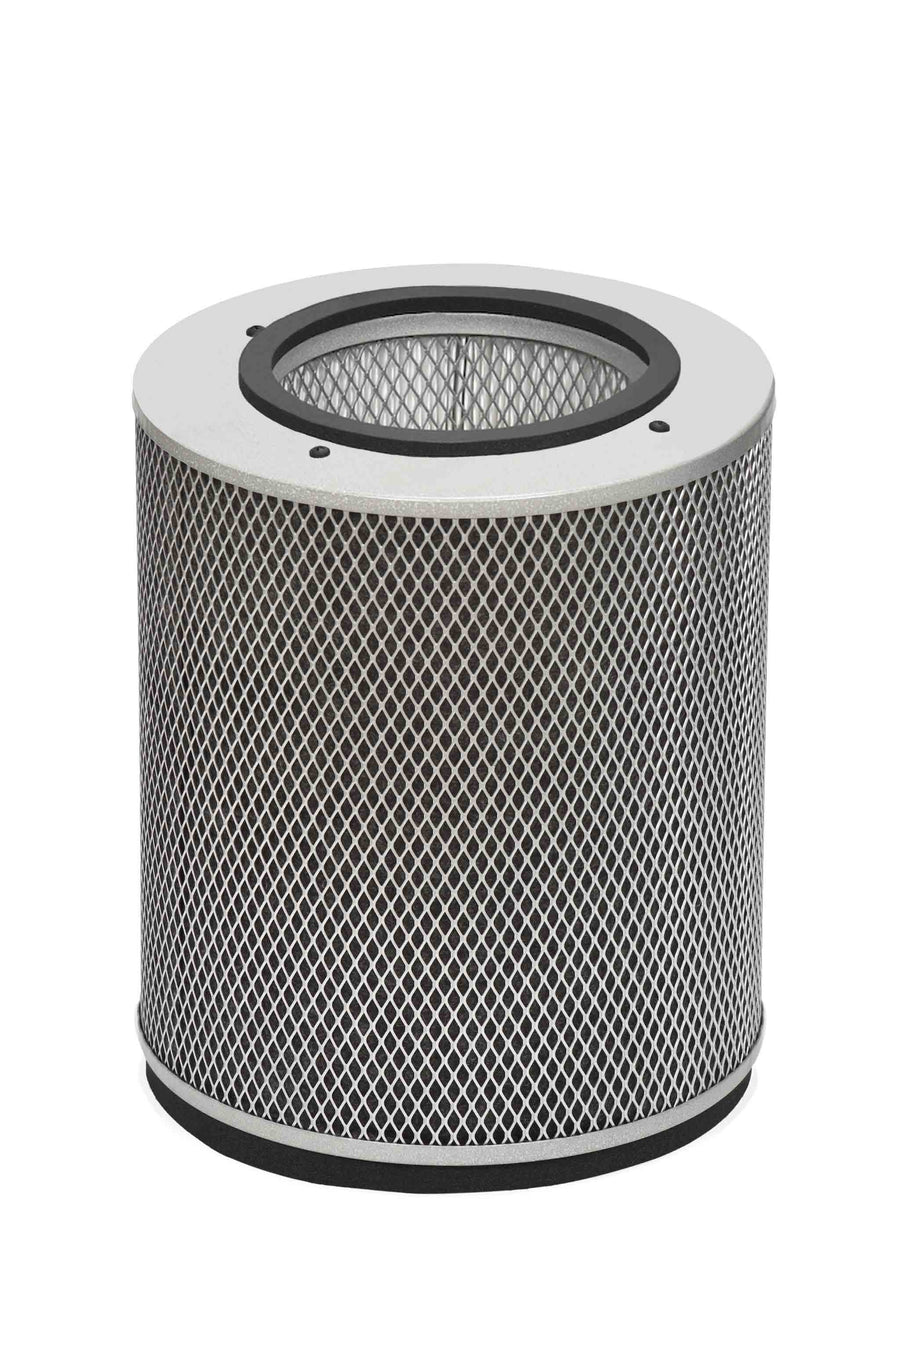 Austin Air HealthMate + Plus Junior HM250 Replacement Filter